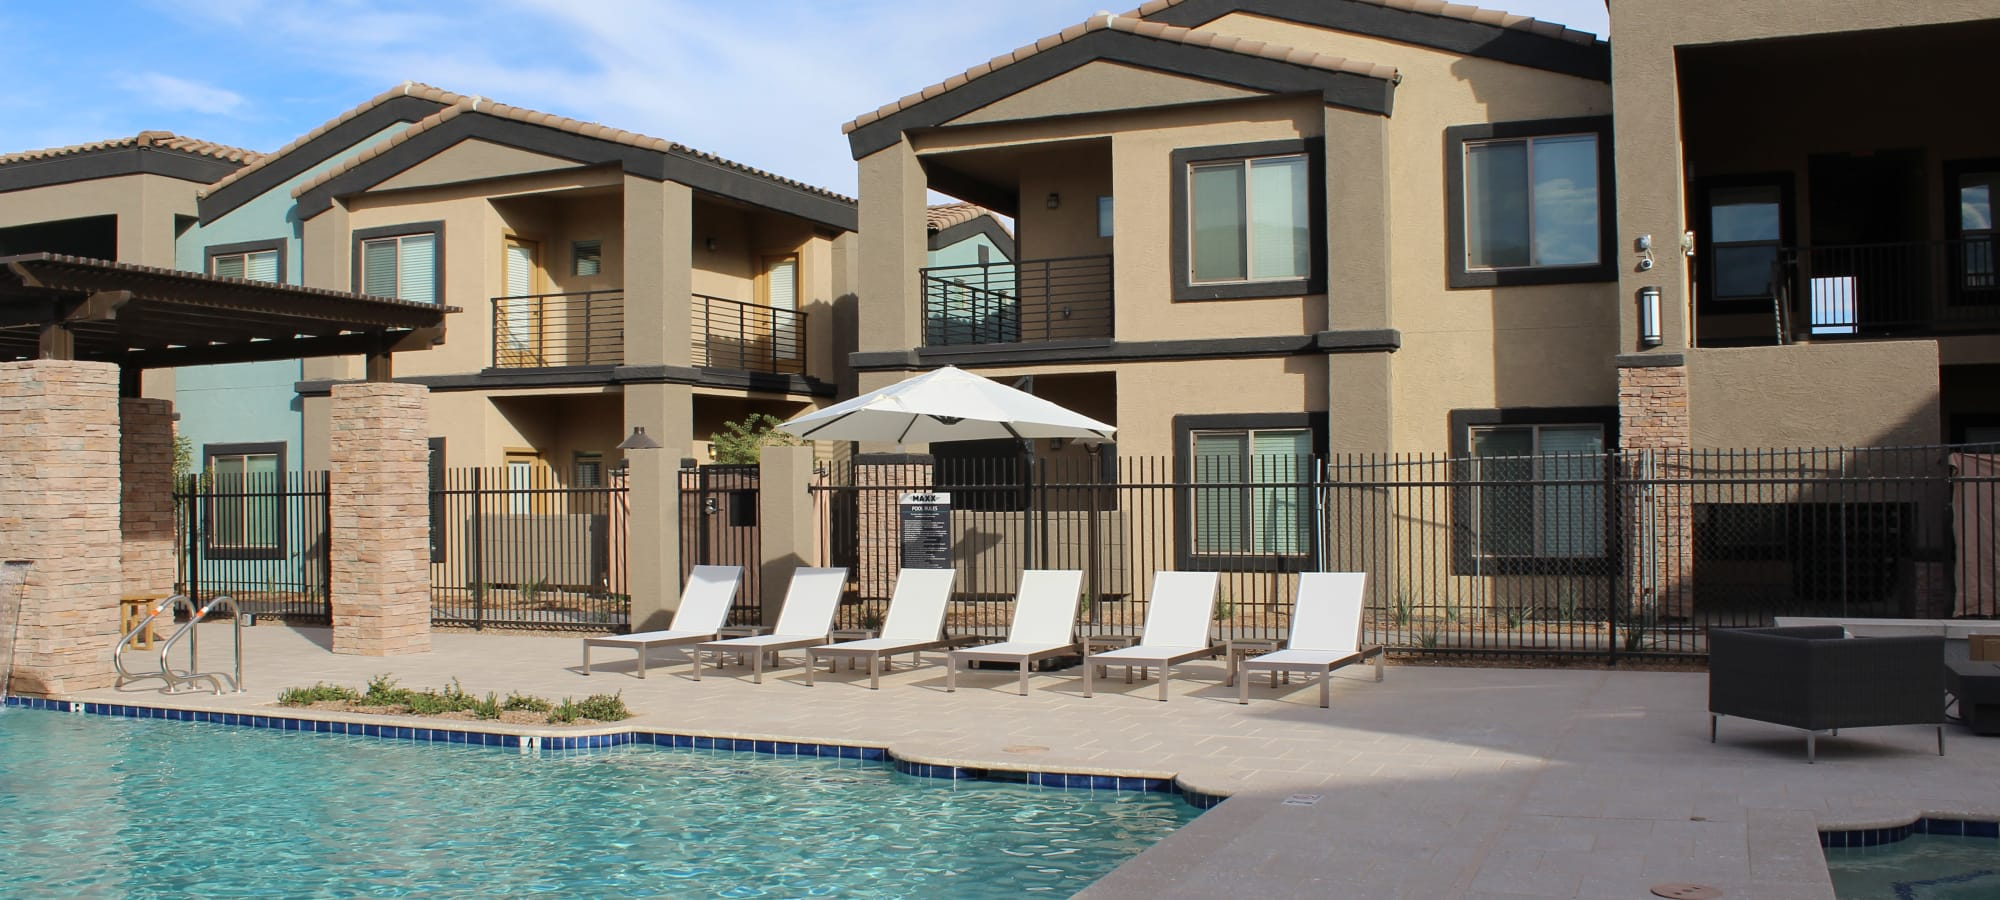 Swimming pool with lounge chairs at The Maxx 159 in Goodyear, Arizona